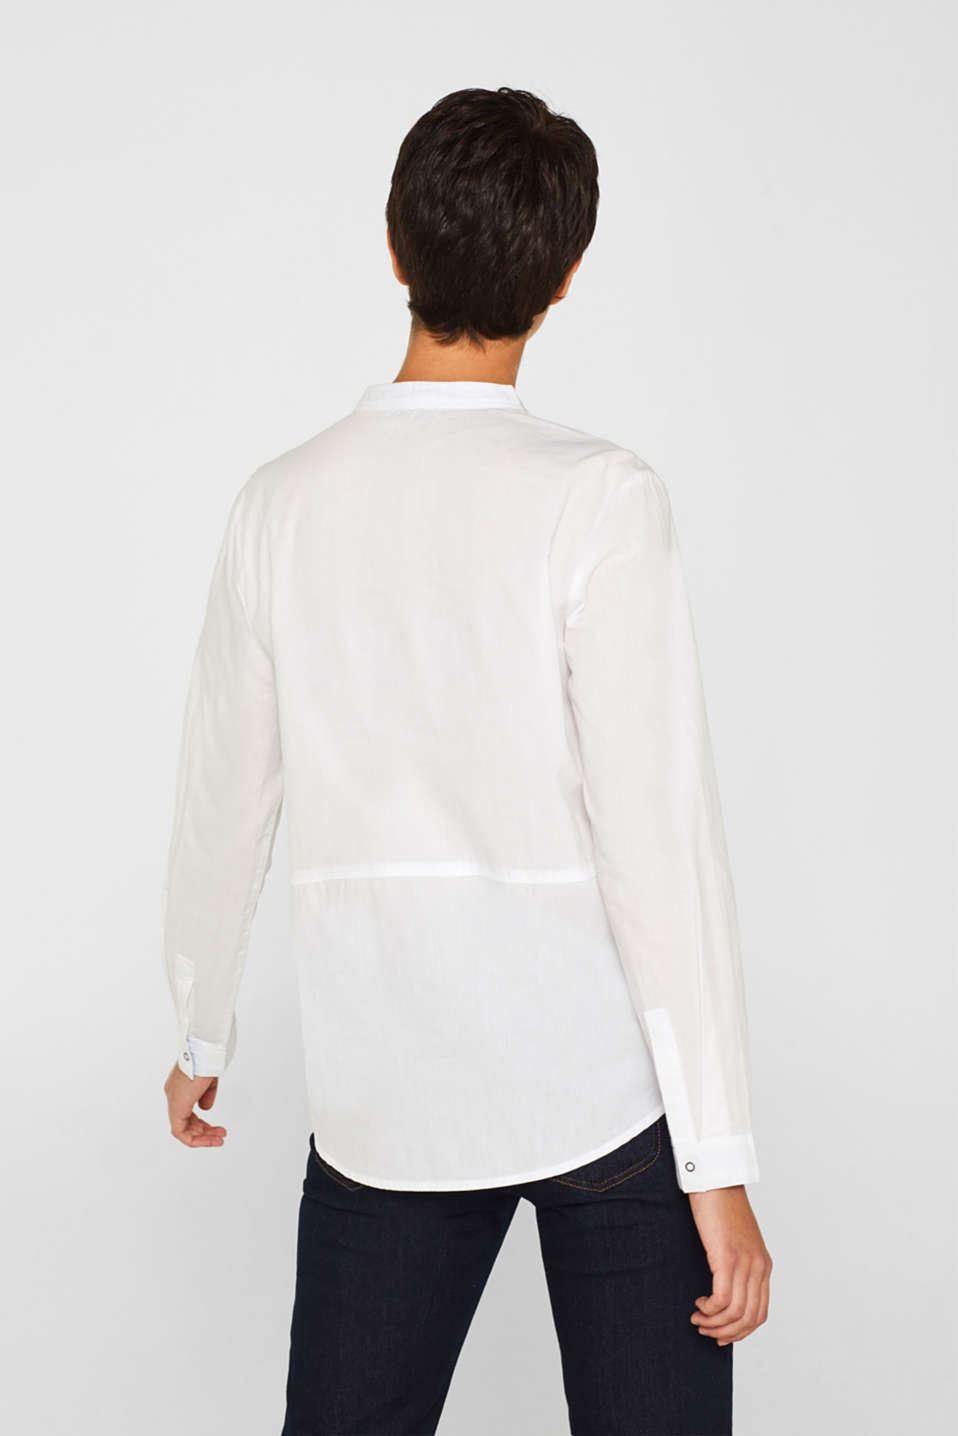 Blouse with a stand-up collar, 100% cotton, WHITE, detail image number 3